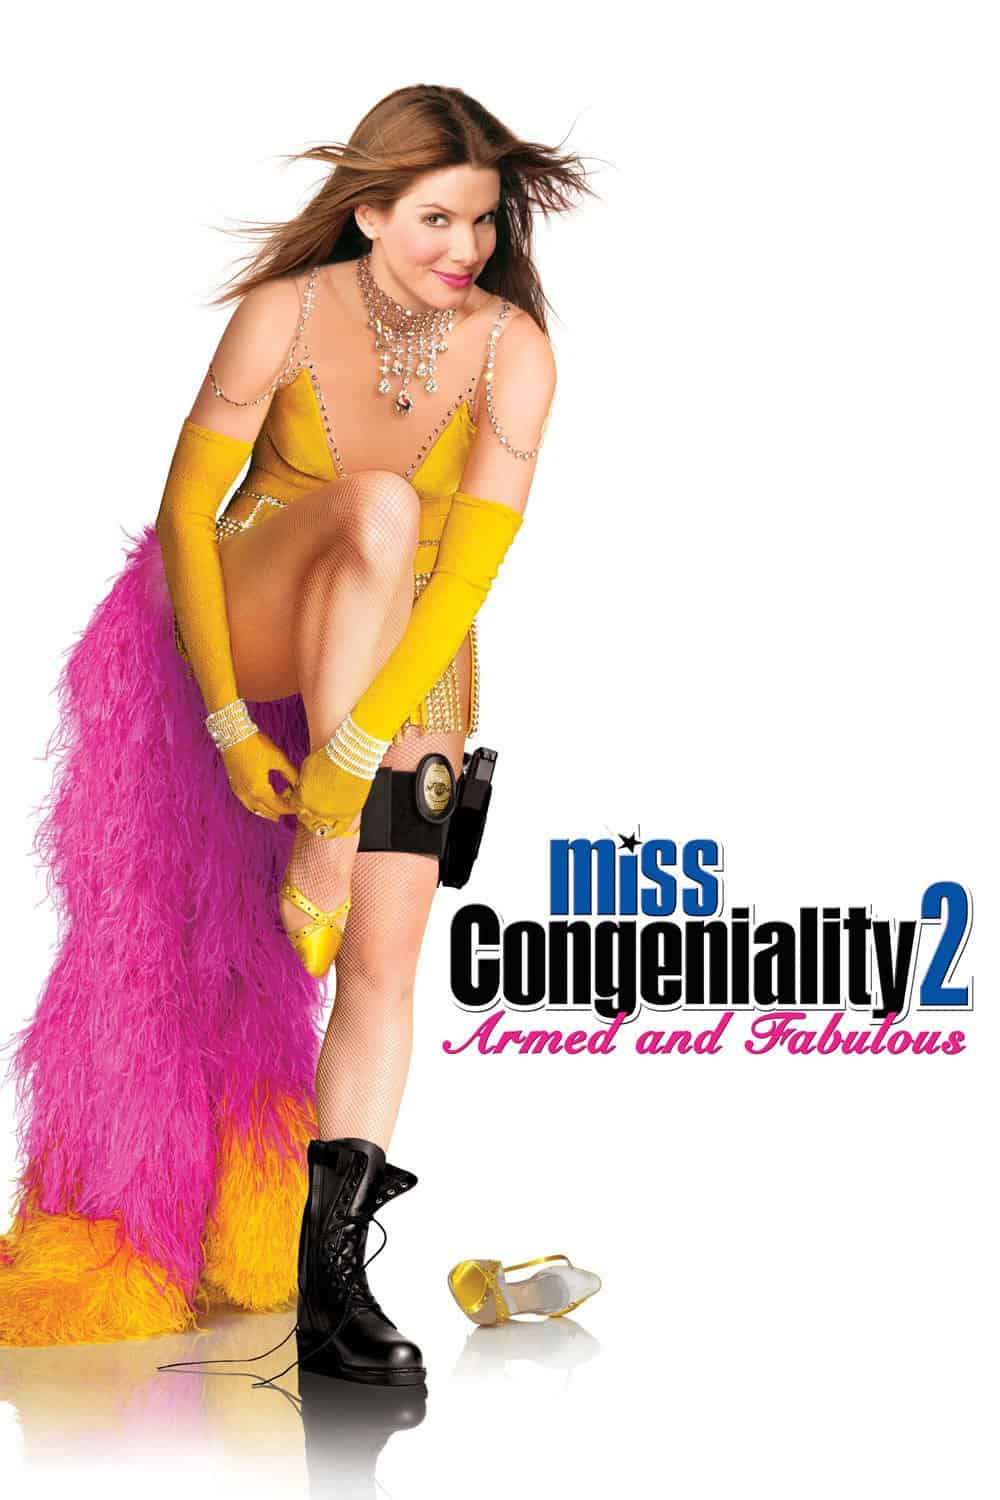 Miss Congeniality 2: Armed and Fabulous, 2005